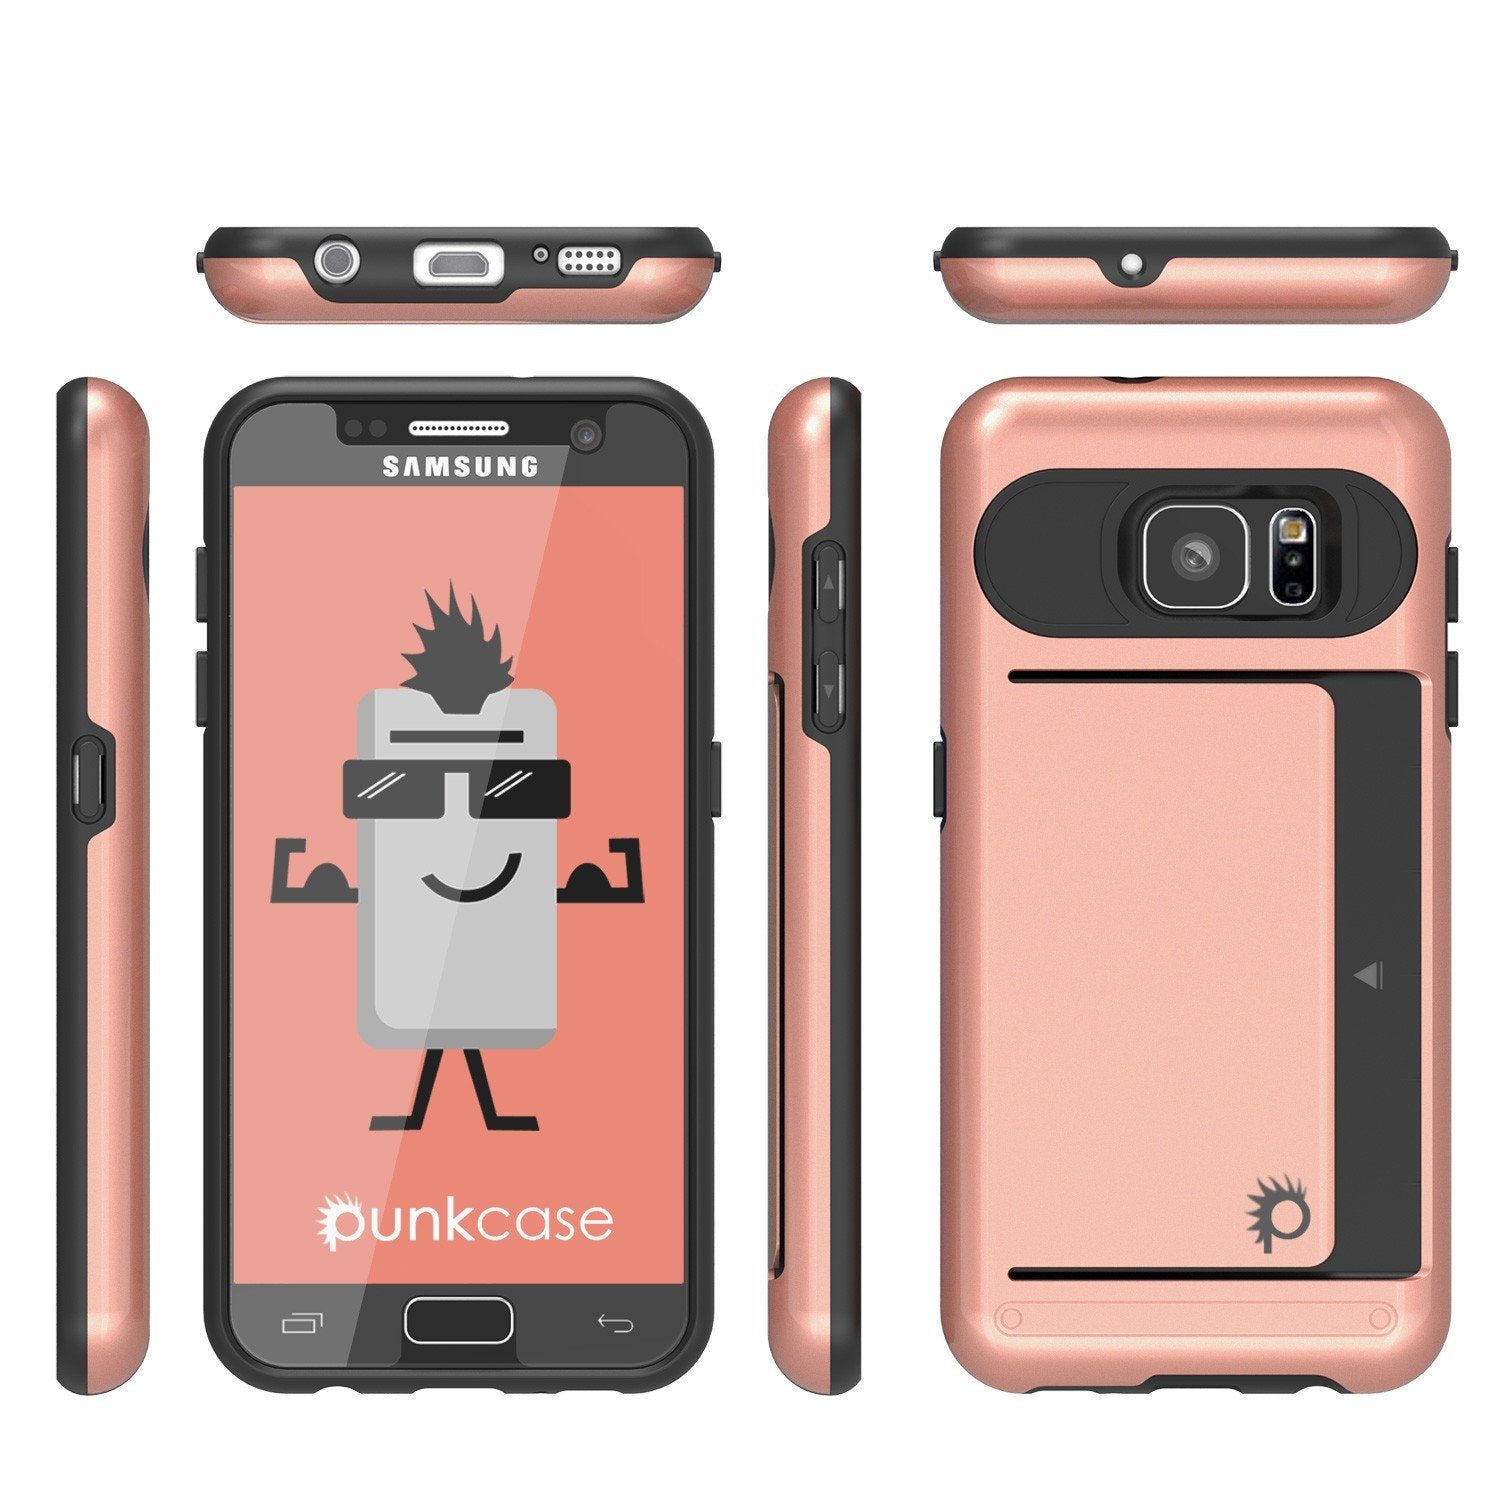 Galaxy S7 EDGE Case PunkCase CLUTCH Rose Gold Series Slim Armor Soft Cover Case w/ Screen Protector - PunkCase NZ